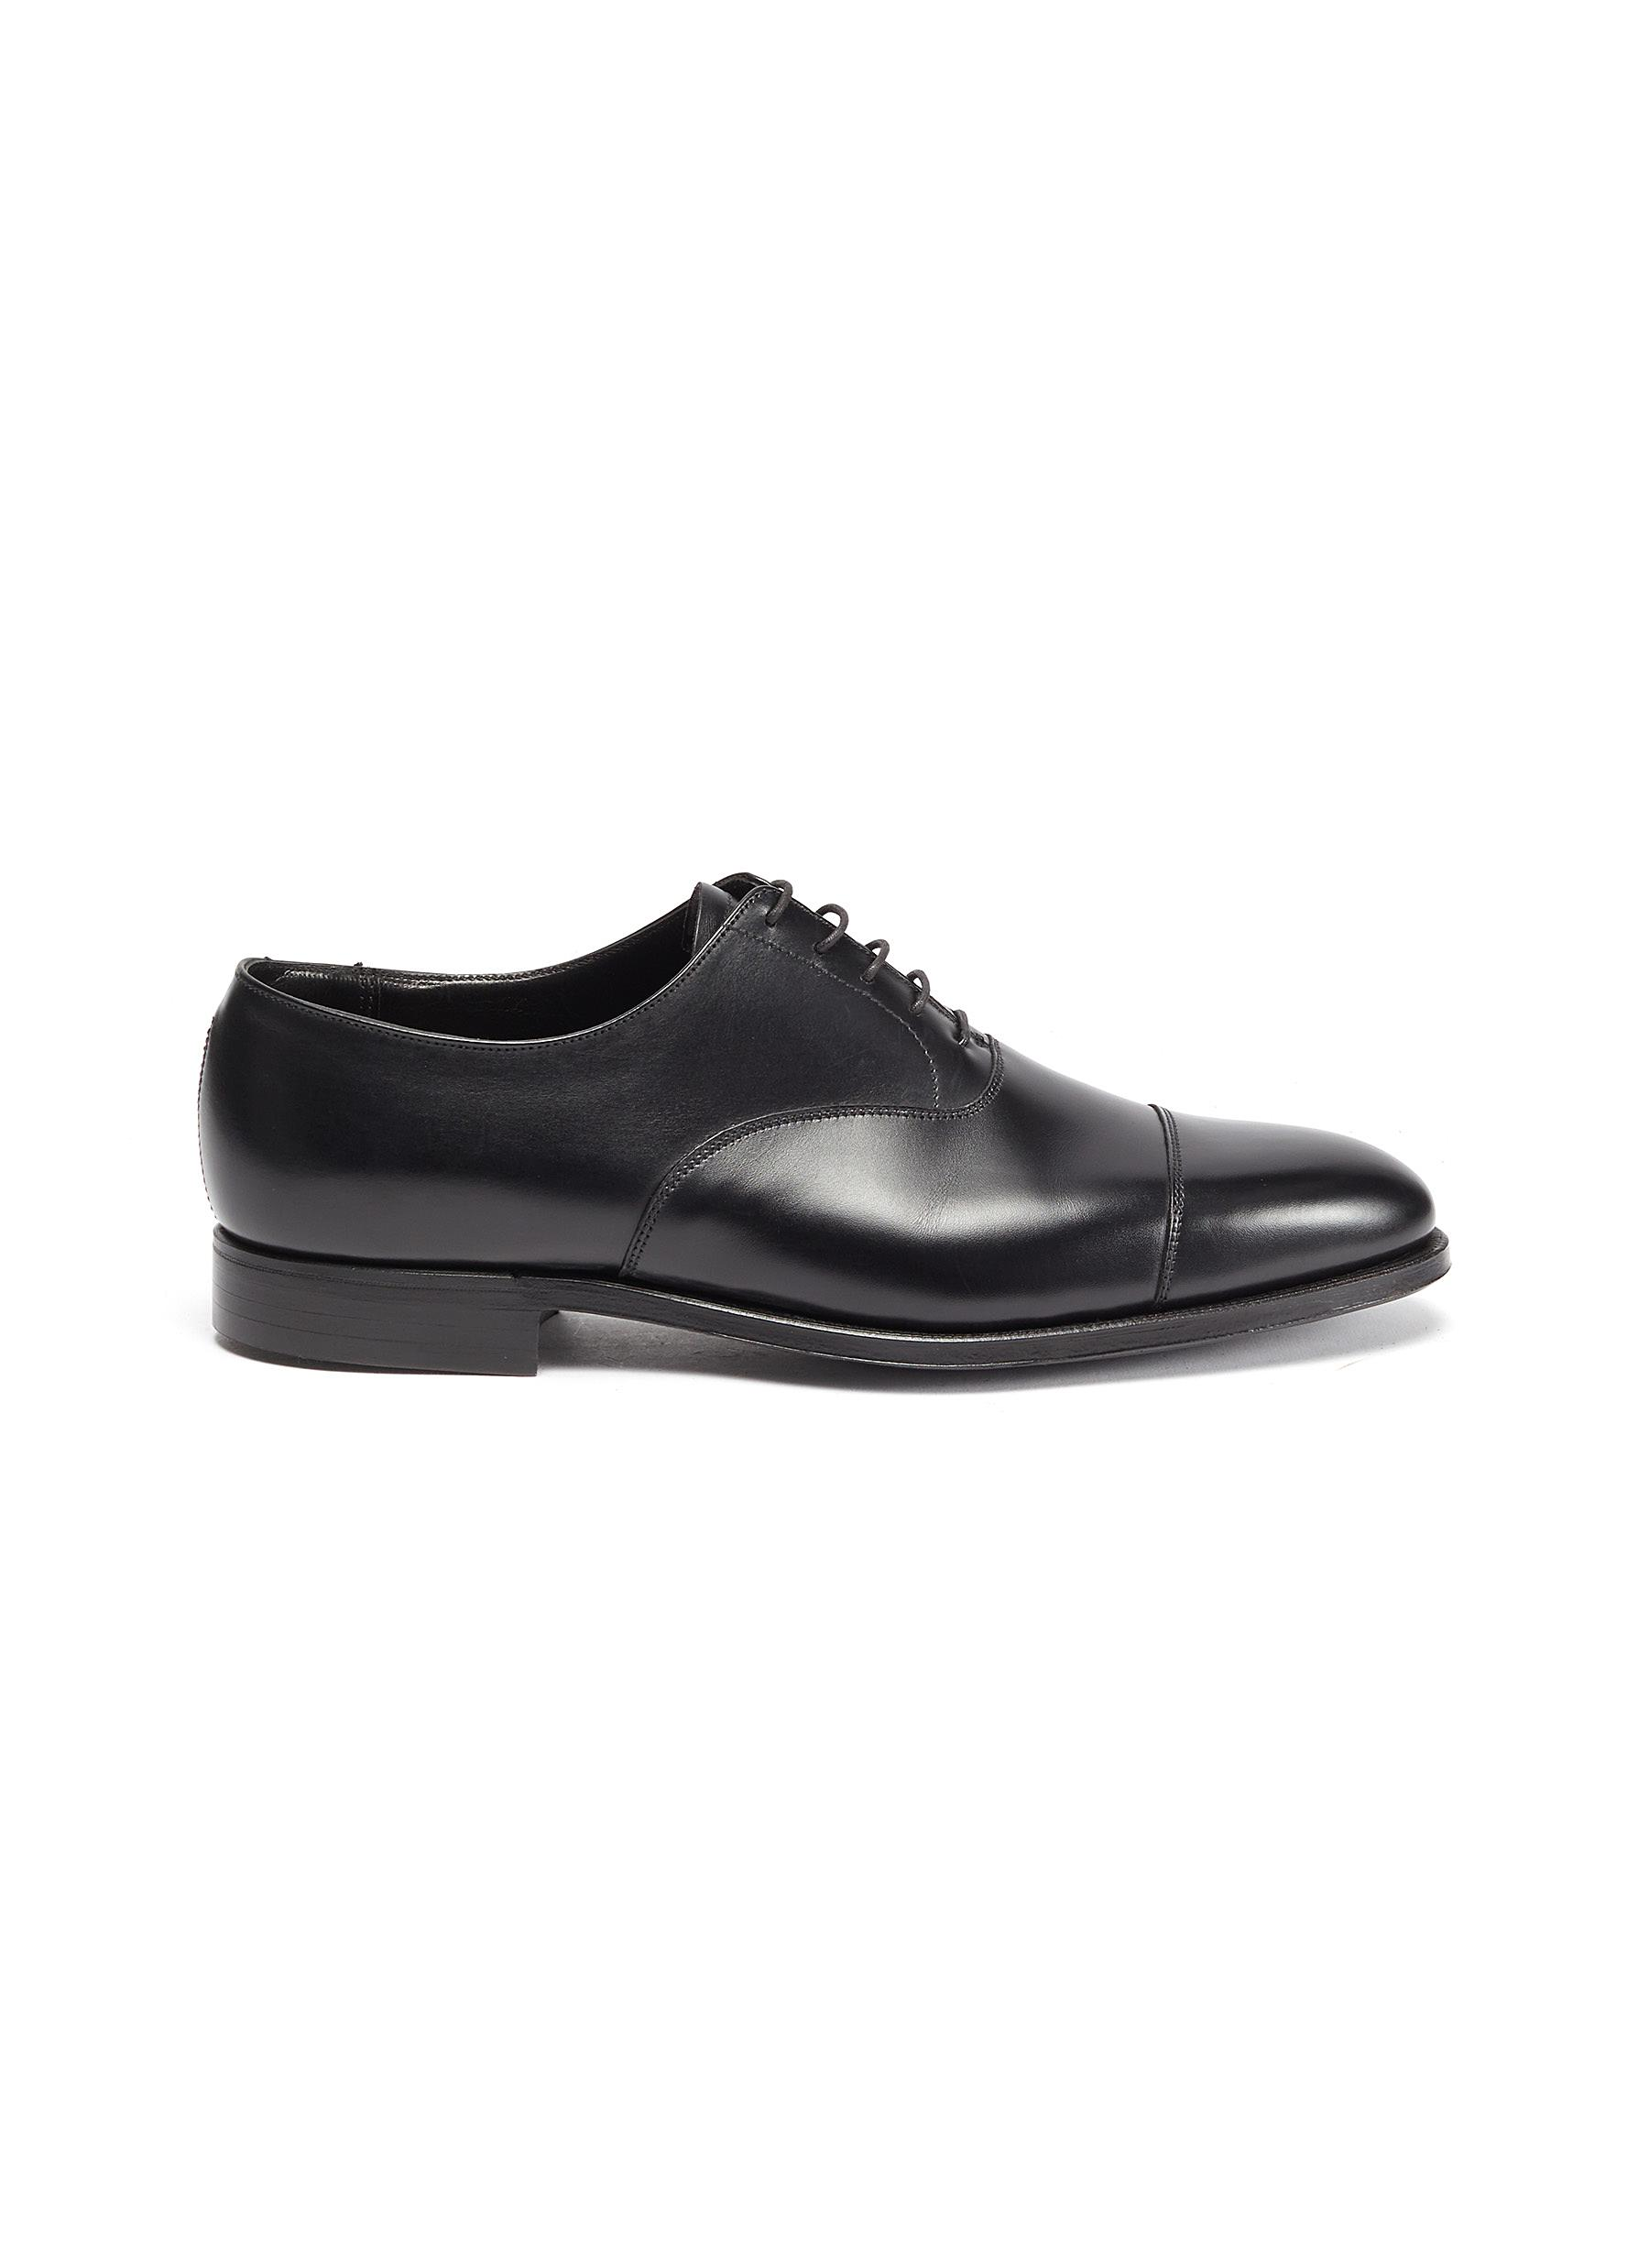 Michael' Chisel Toe Calfskin Leather Oxford Shoes